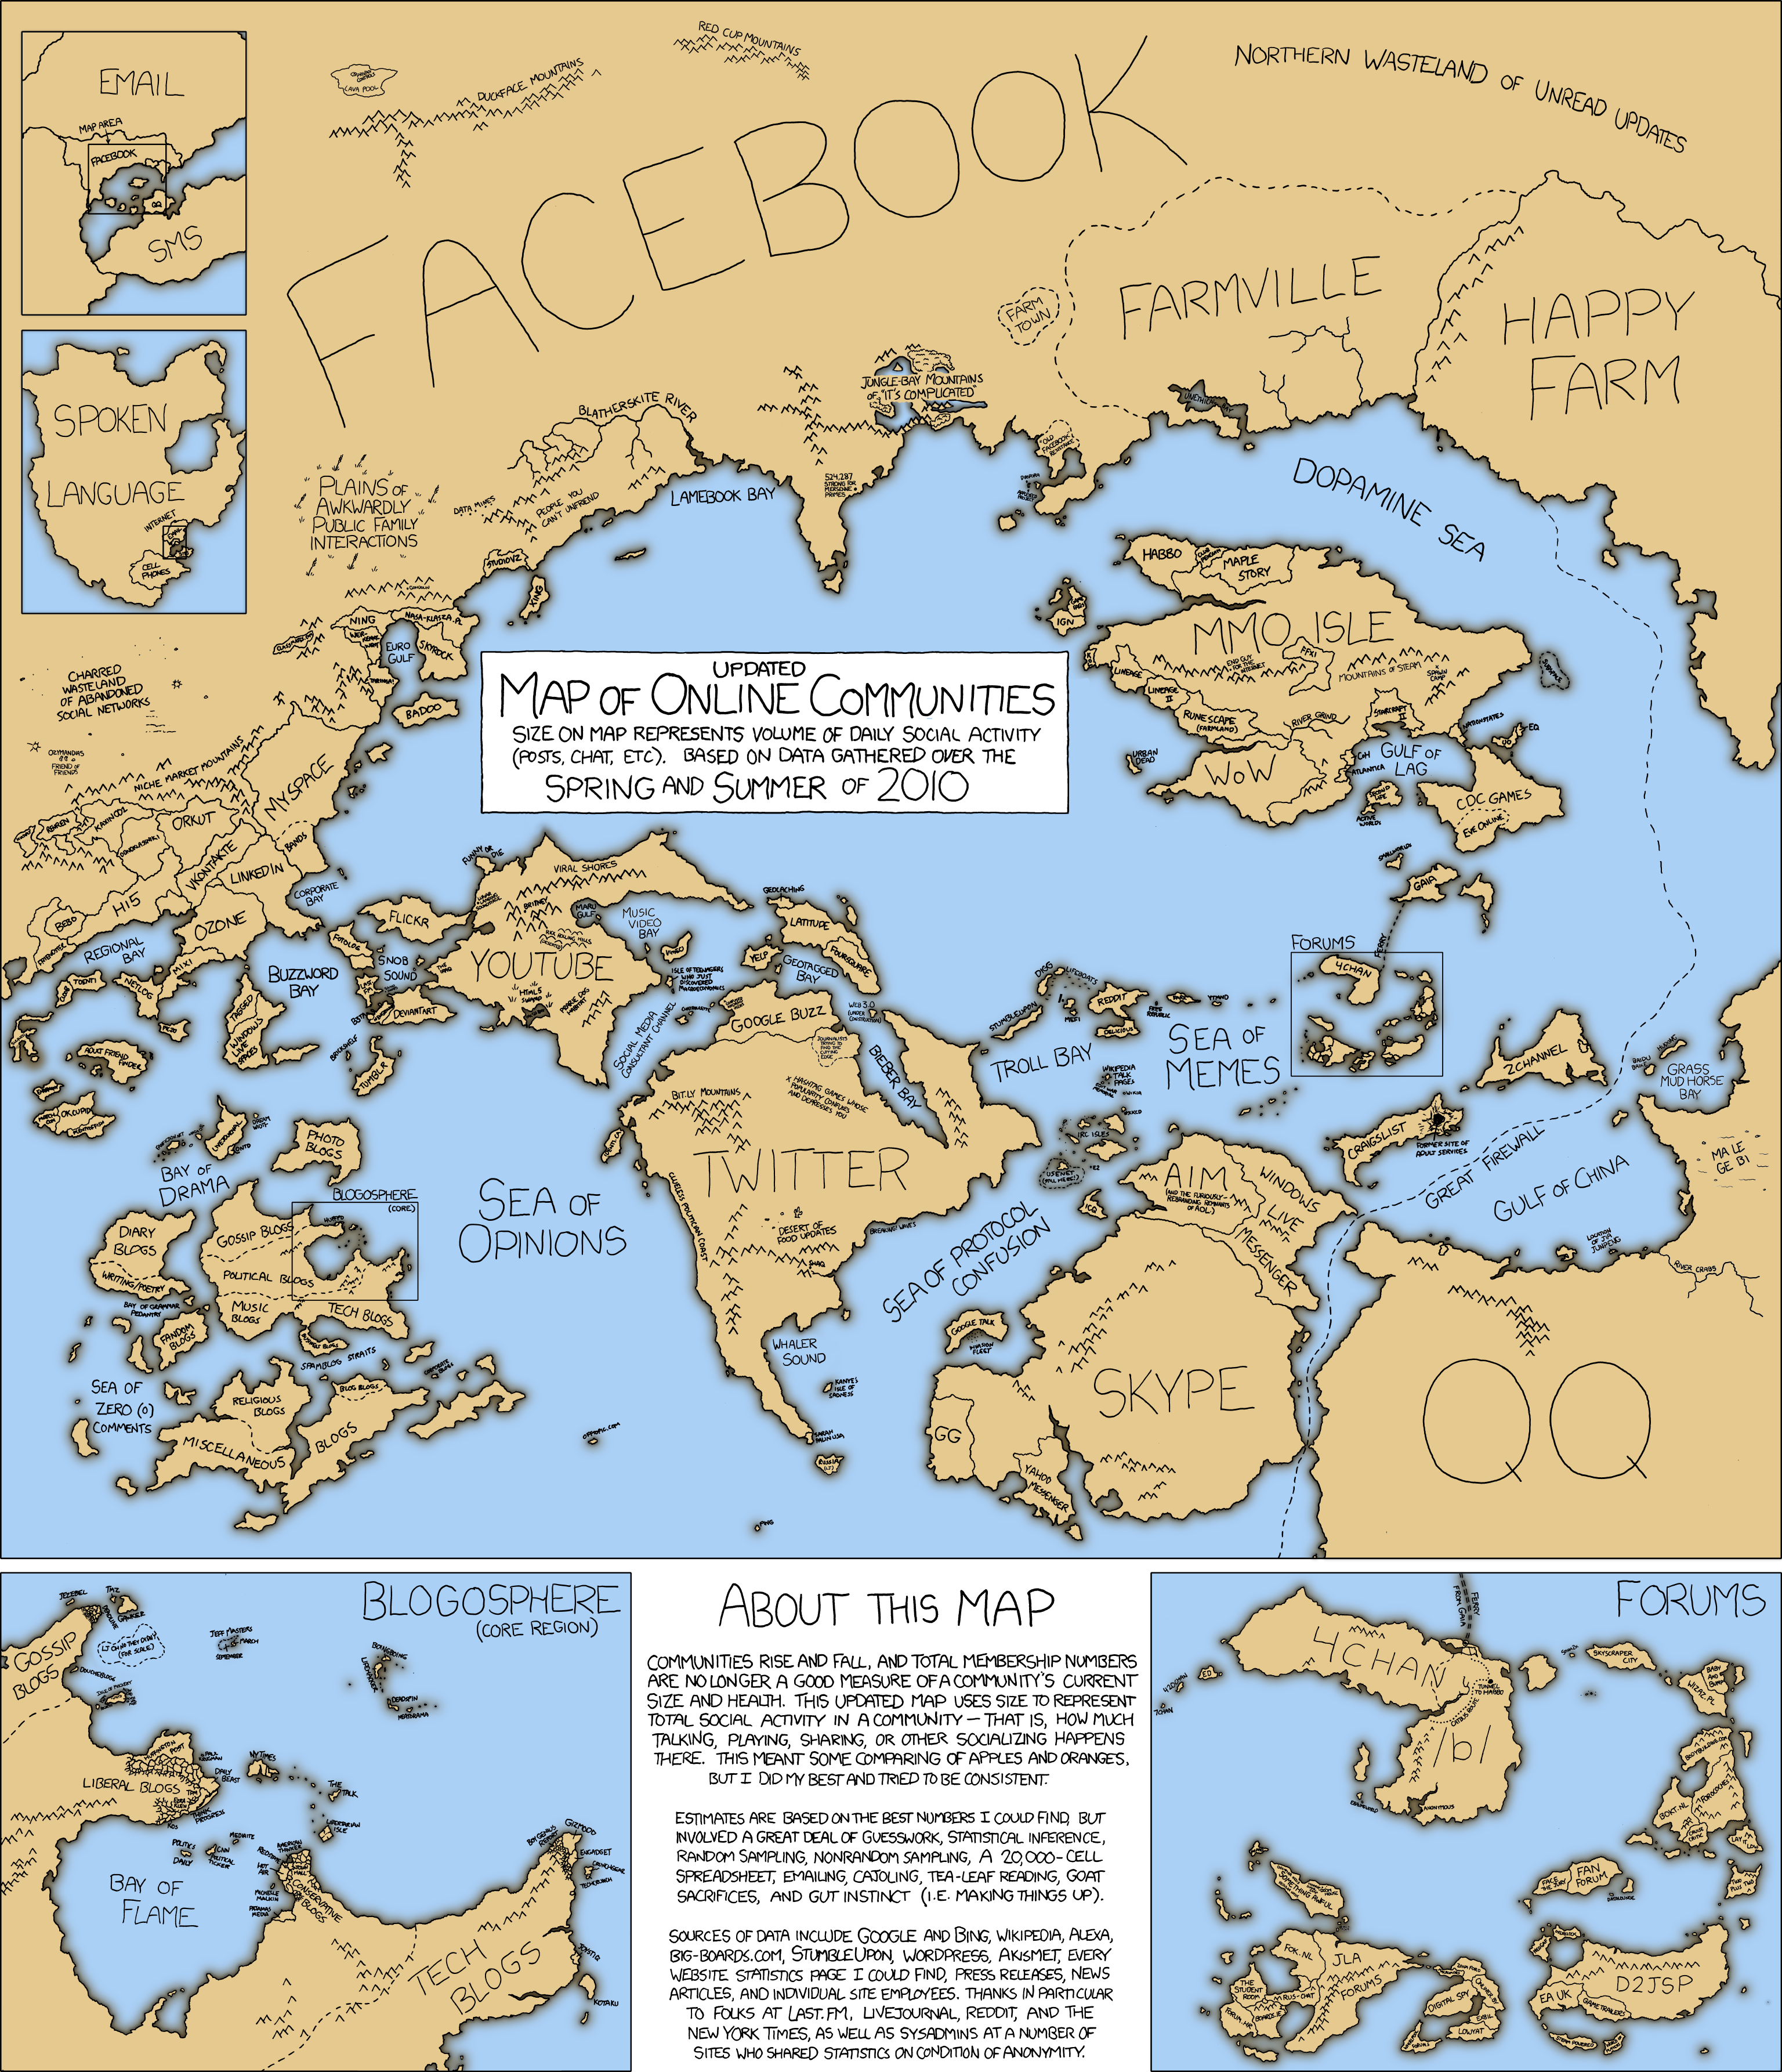 map dating xkcd That crazy guy at xkcd have made a visual map representation of the internet based on user activity  the internet as a map  dating & relationships.